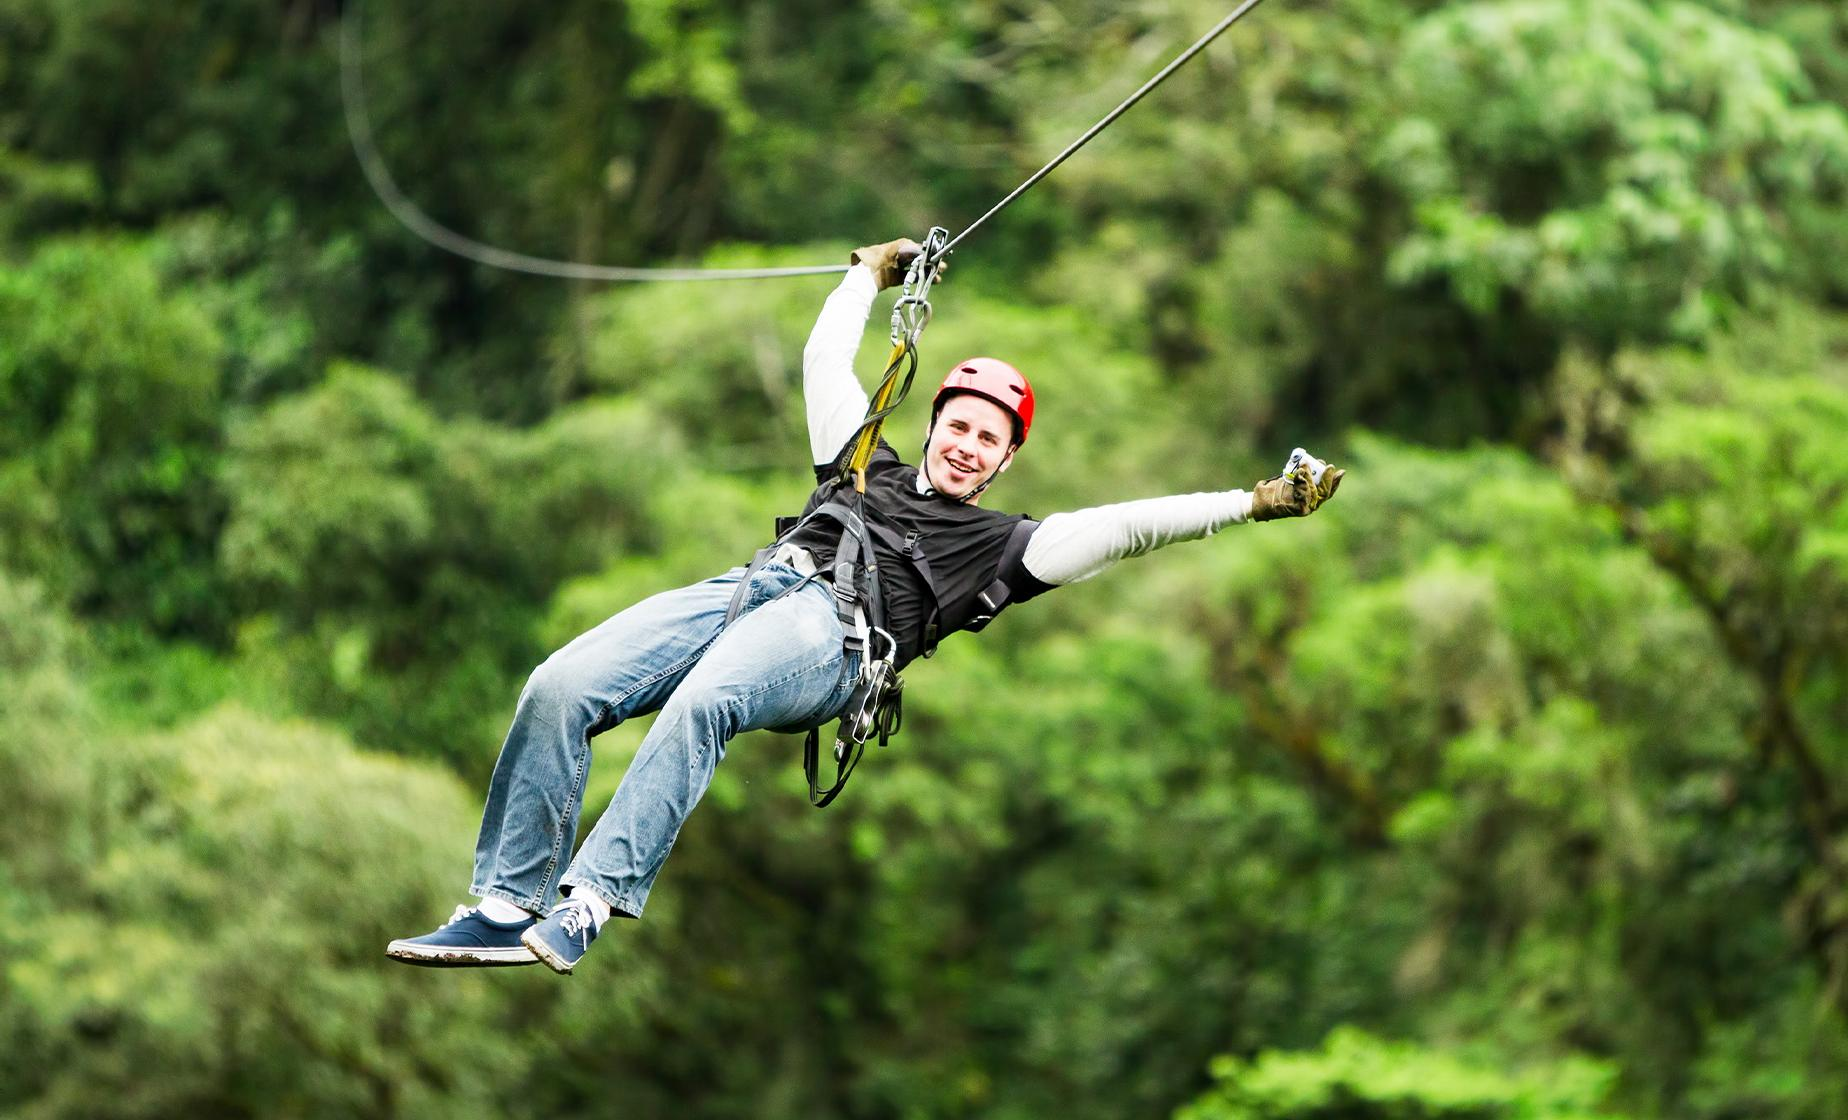 Rainforest Canopy Adventure & Zipline Expedition Day Tour in Ketchikan